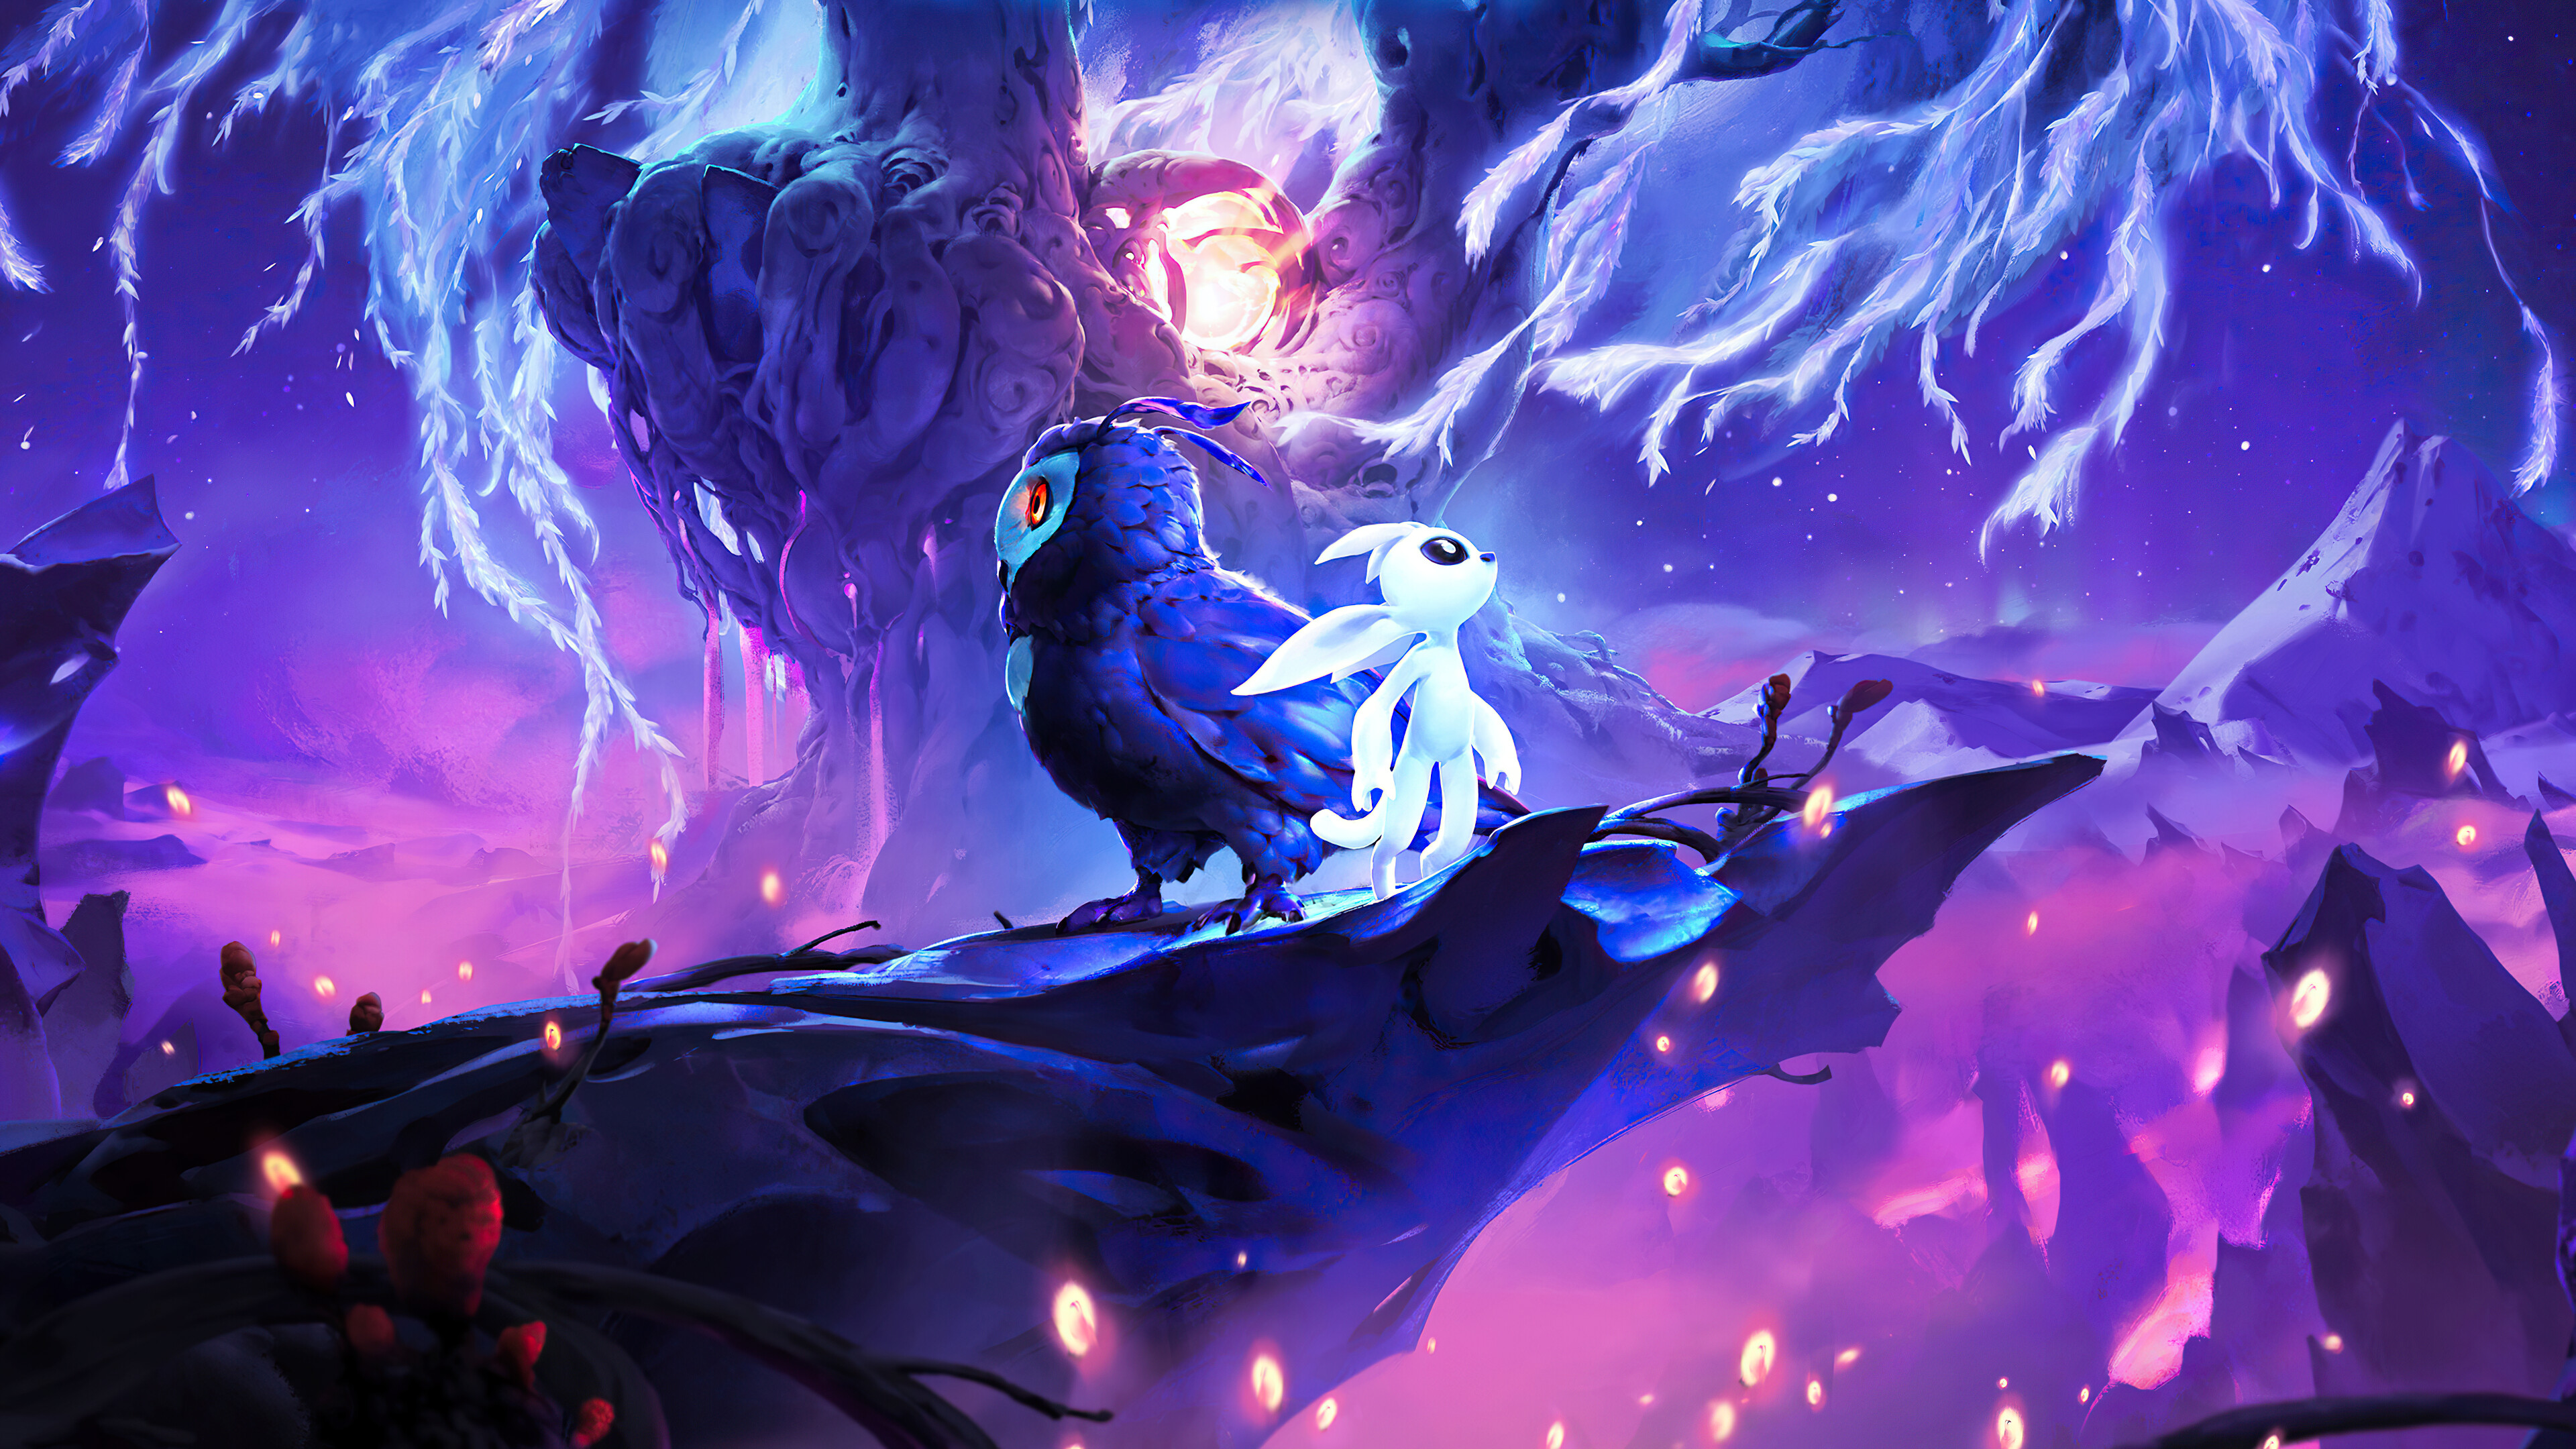 Wallpaper Ori and the Will of the Wisps